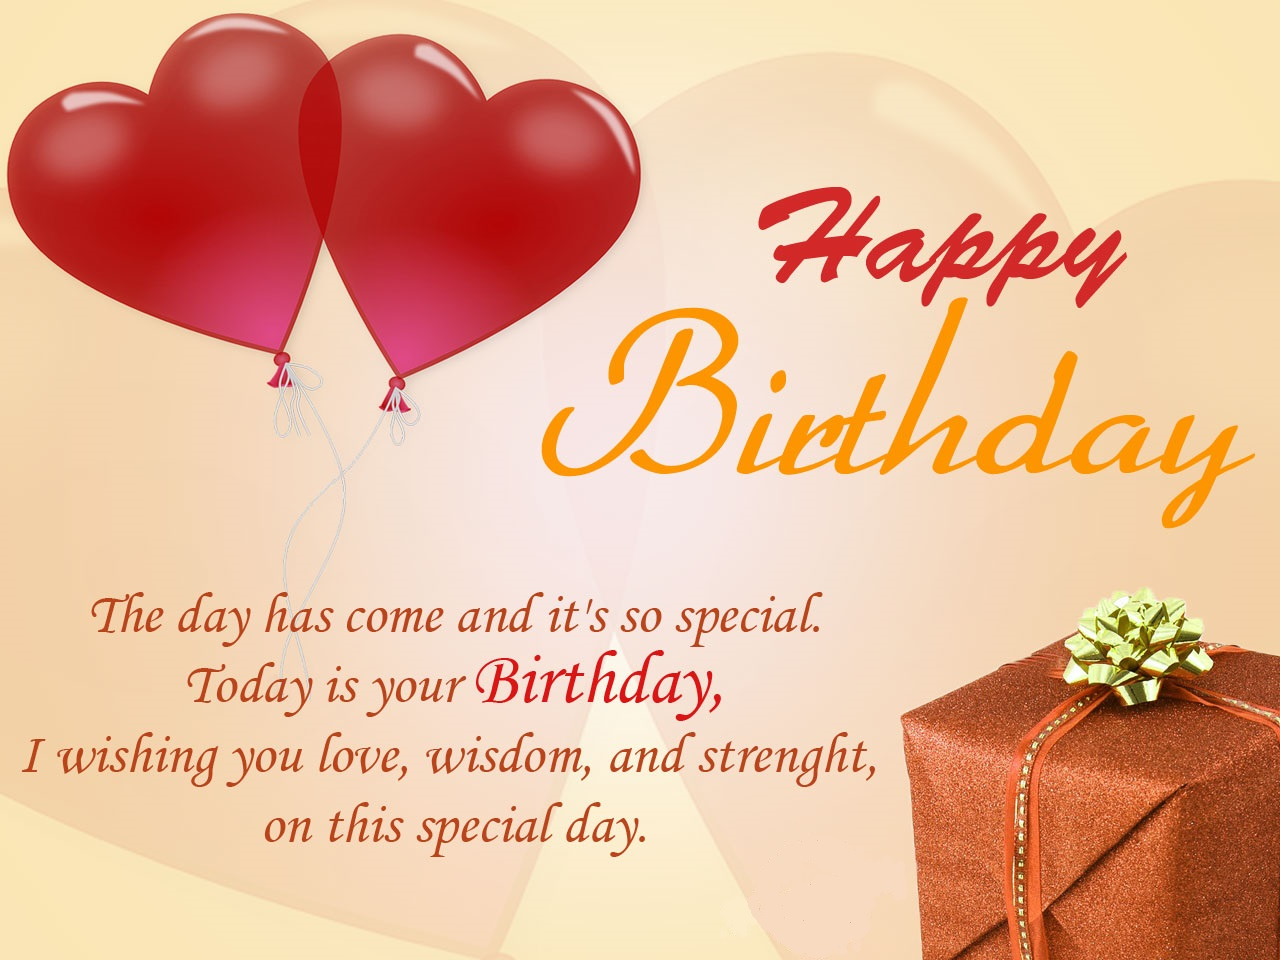 Happy Birthday wishes quotes for husband the day has e and it s so special